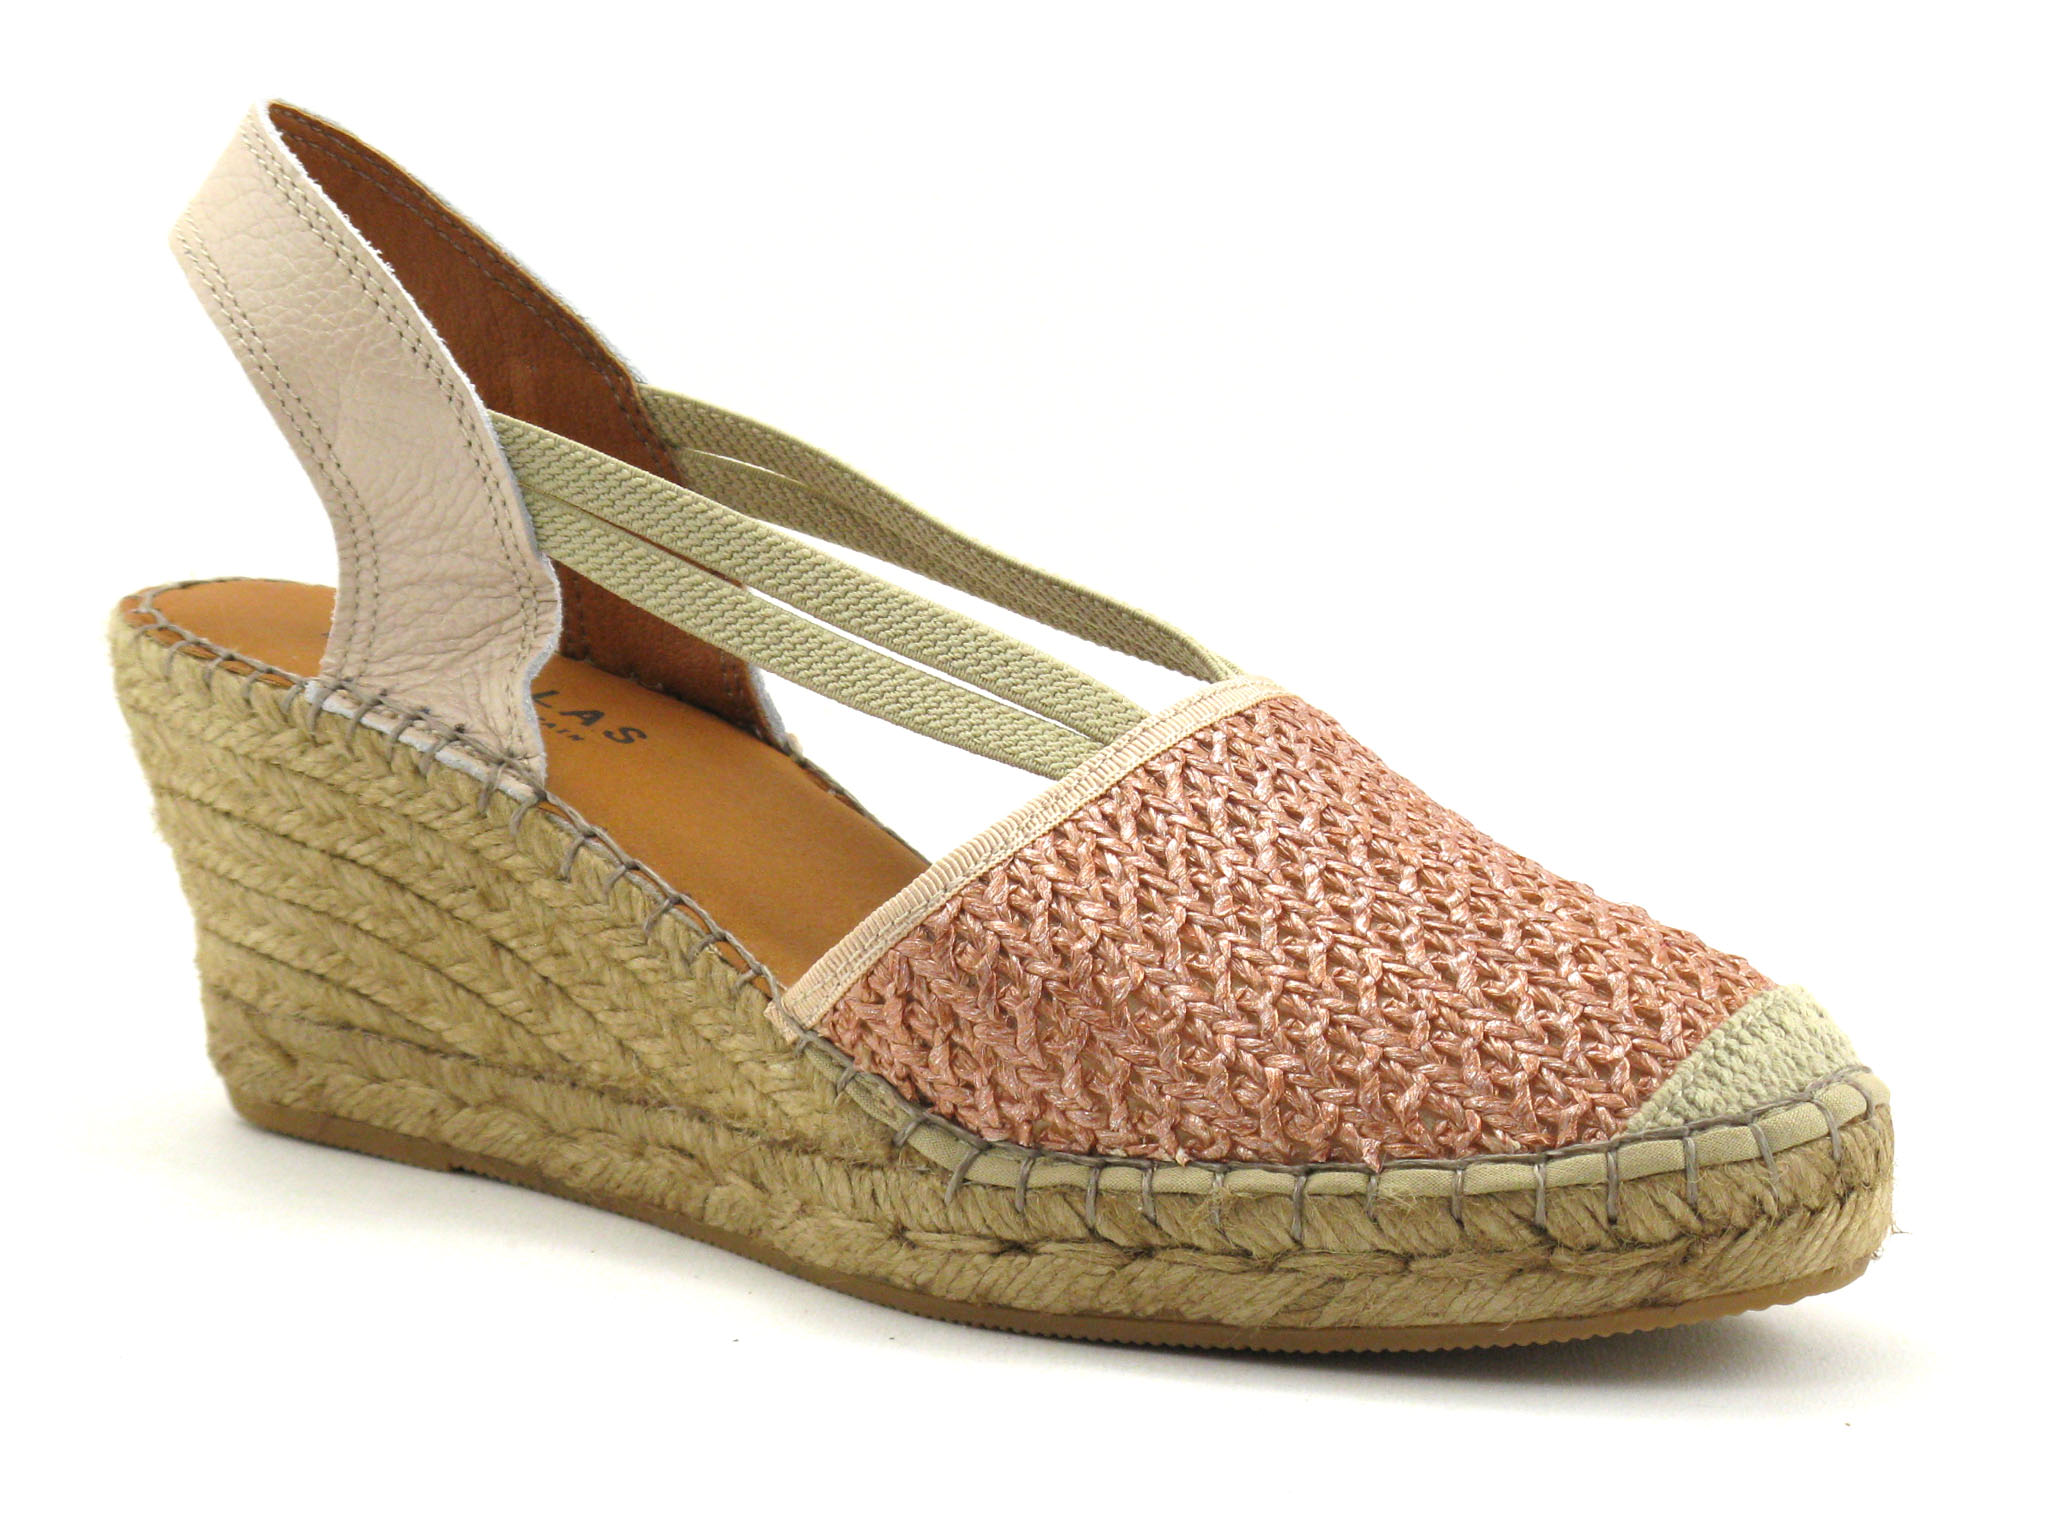 Acebos - 9611 rose nude - Le chauss pied